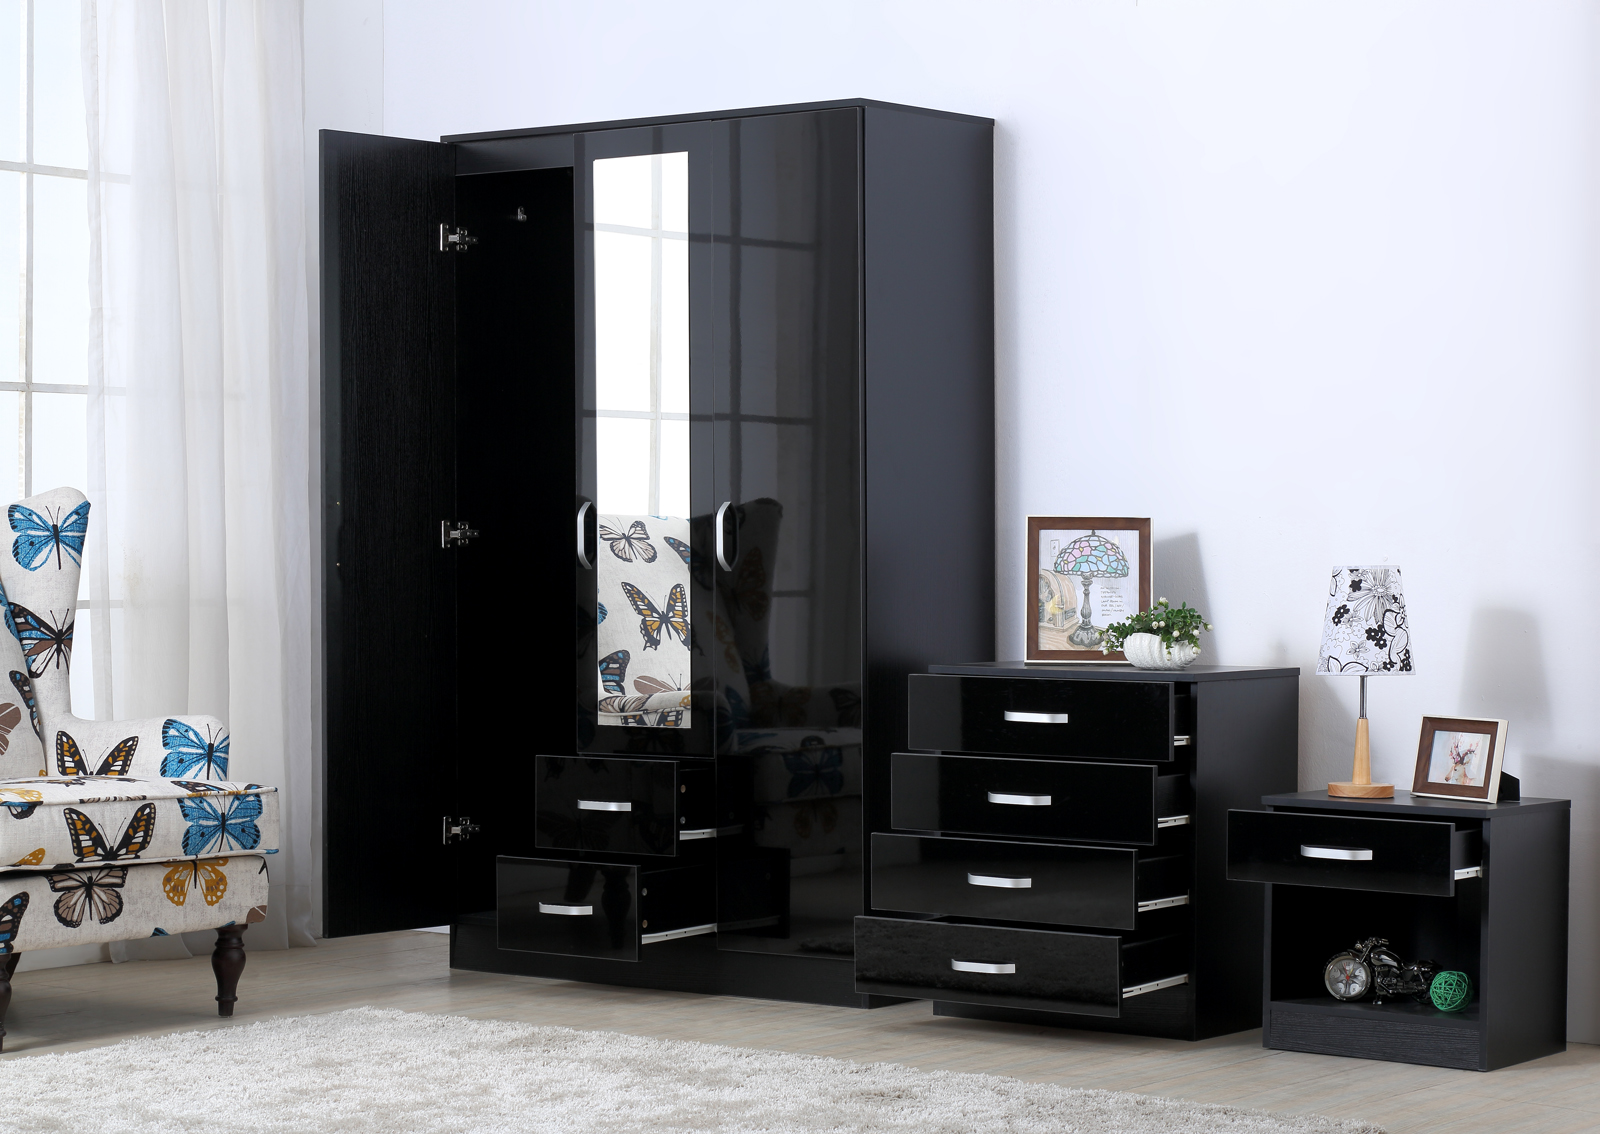 bedroom furniture high gloss black photo - 9